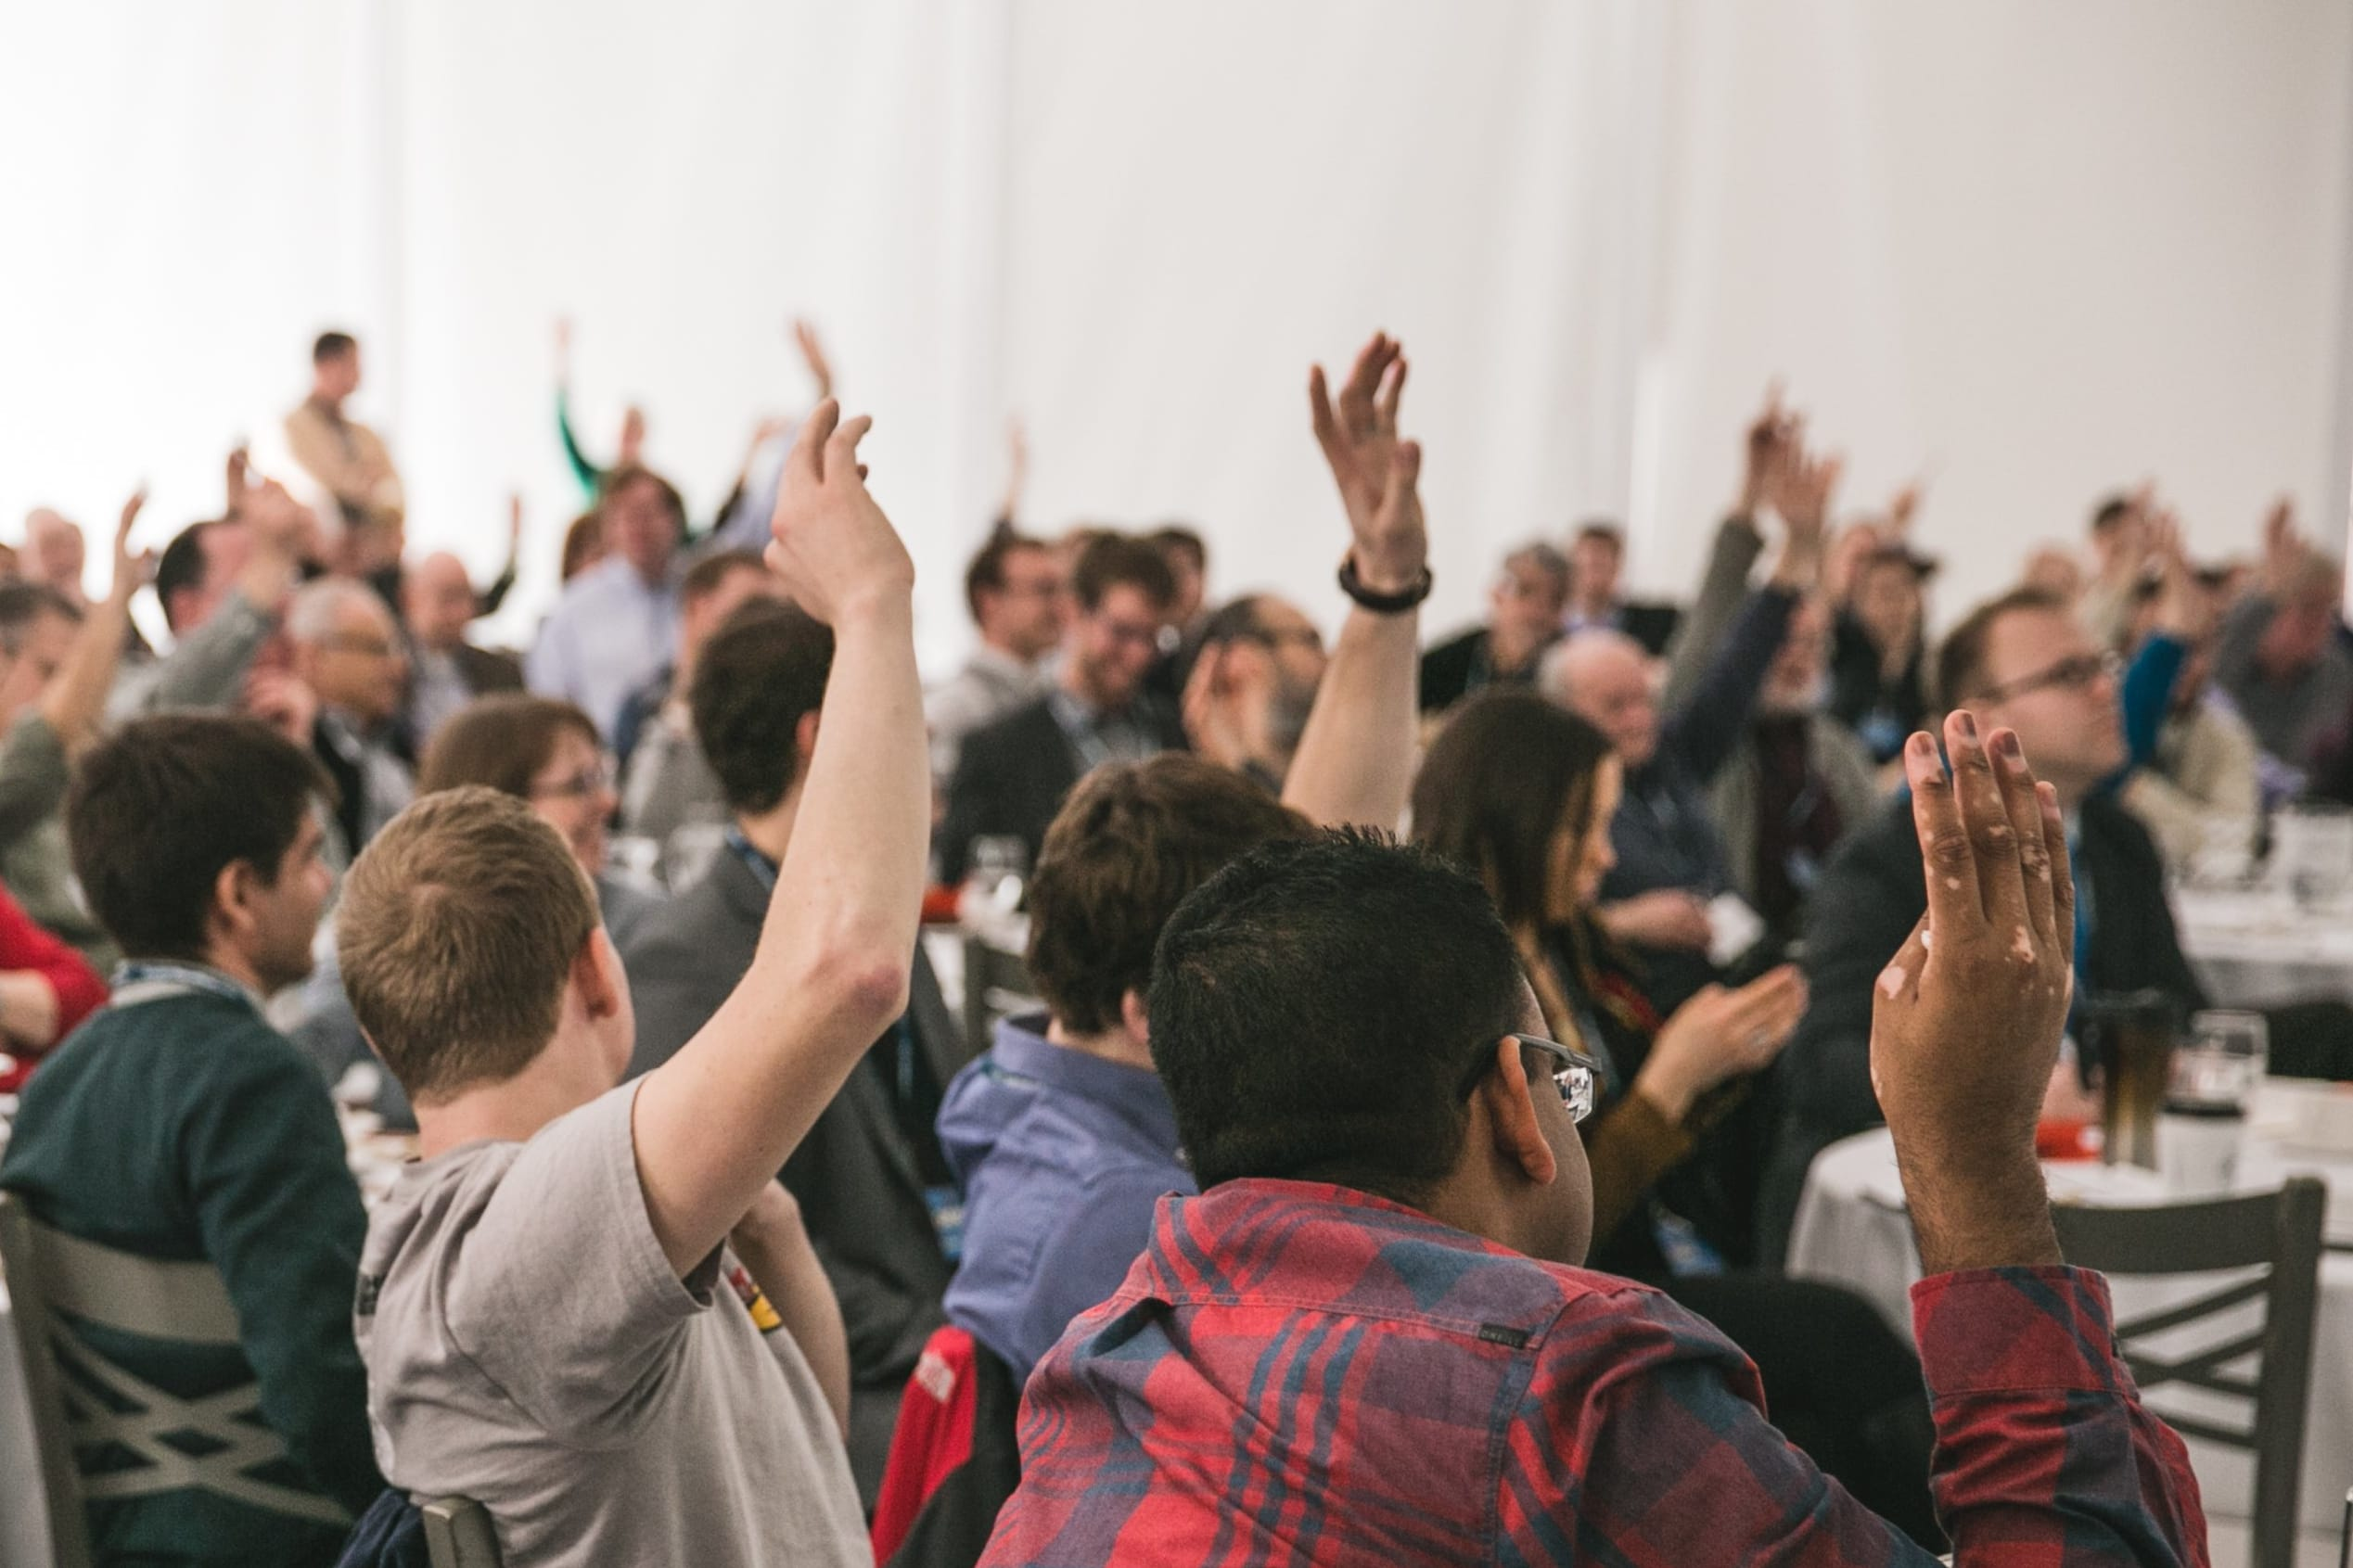 Students have hands raised in class